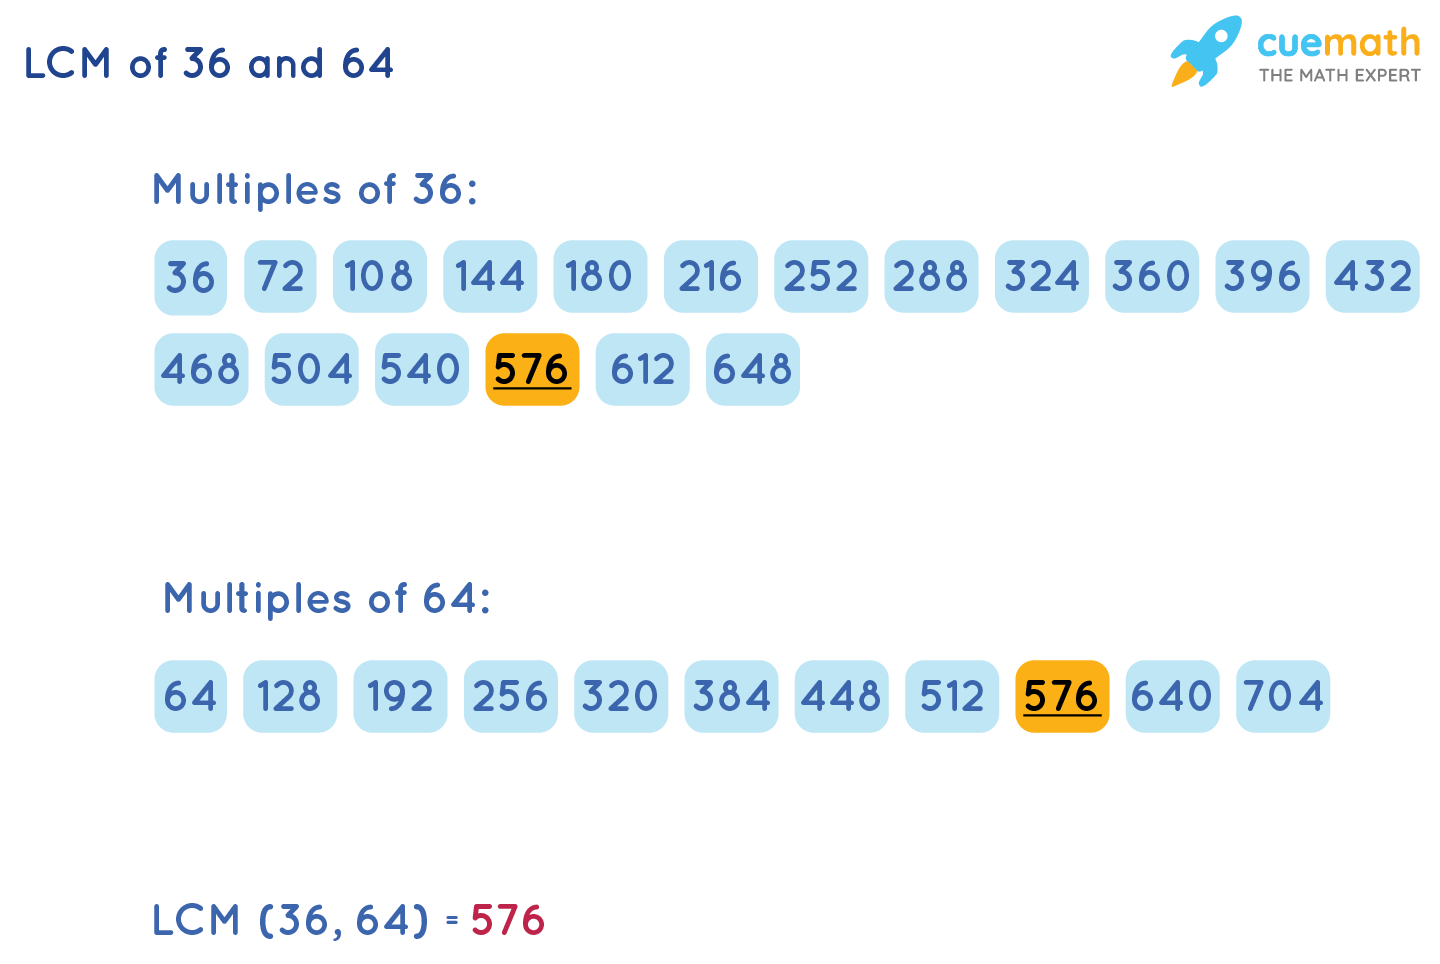 LCM of 36 and 64 by Listing Method